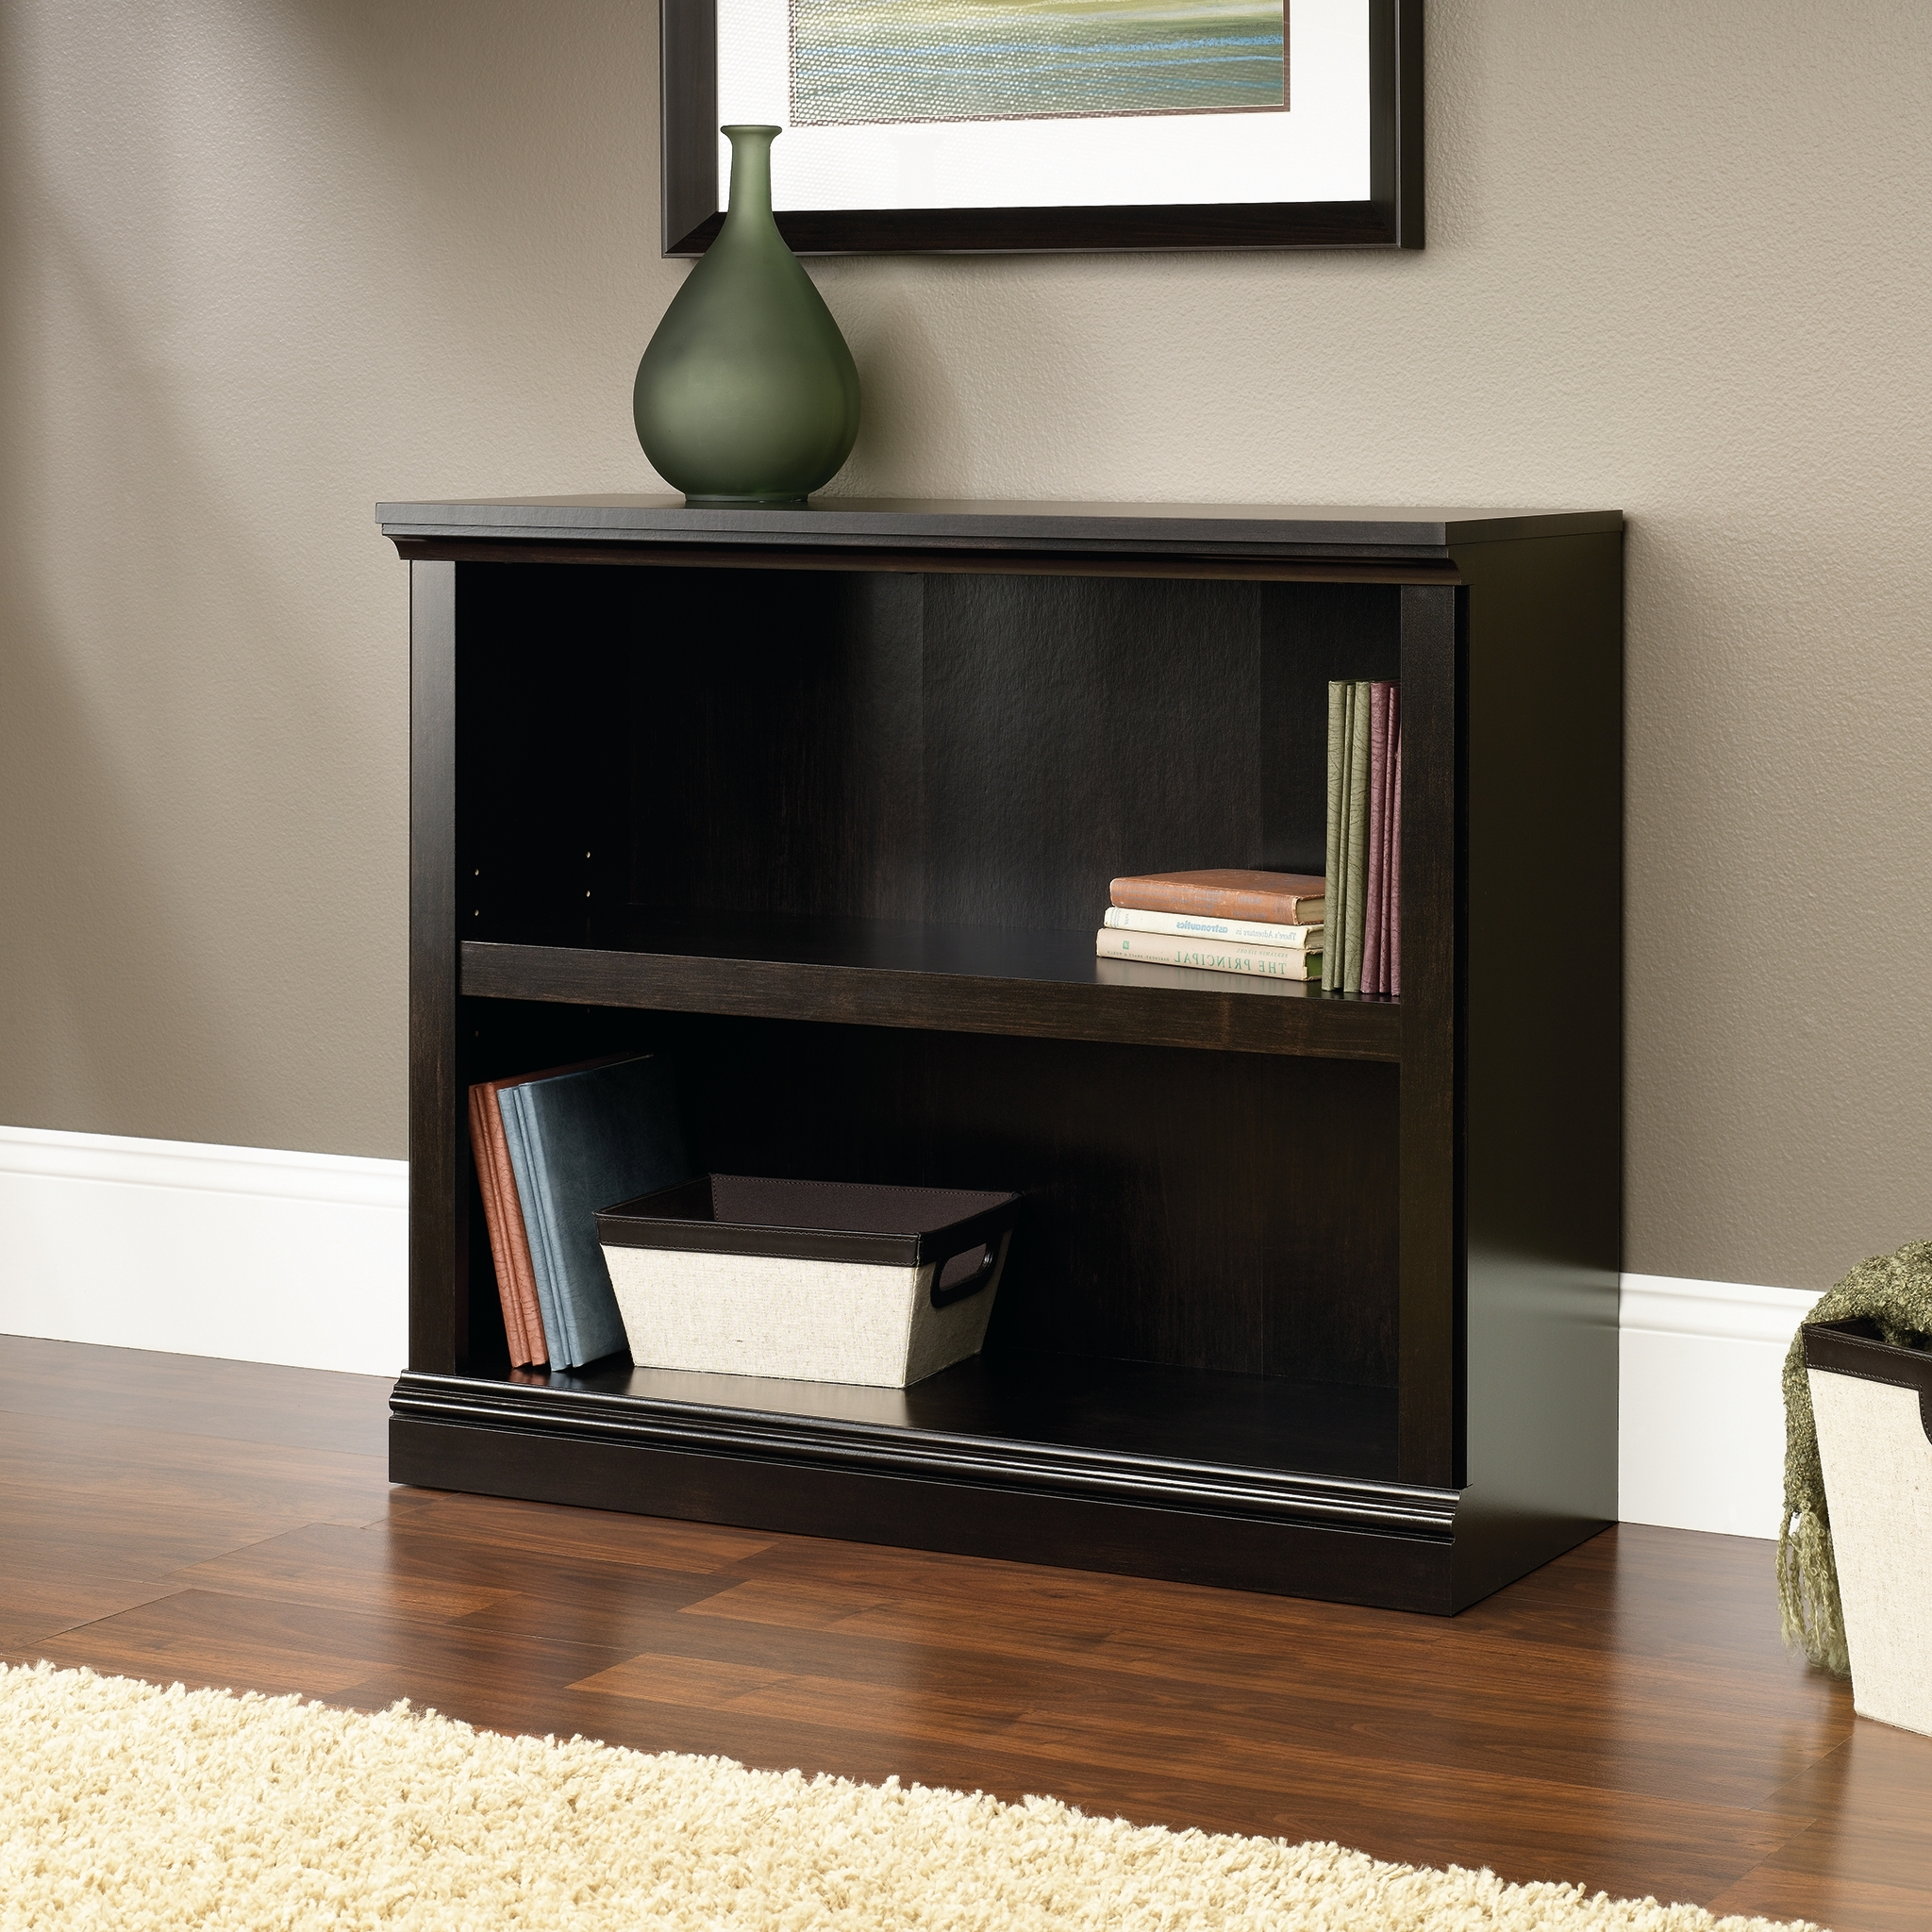 Most Recent Sauder Bookcases – Walmart Throughout Saunders Bookcases (View 7 of 15)